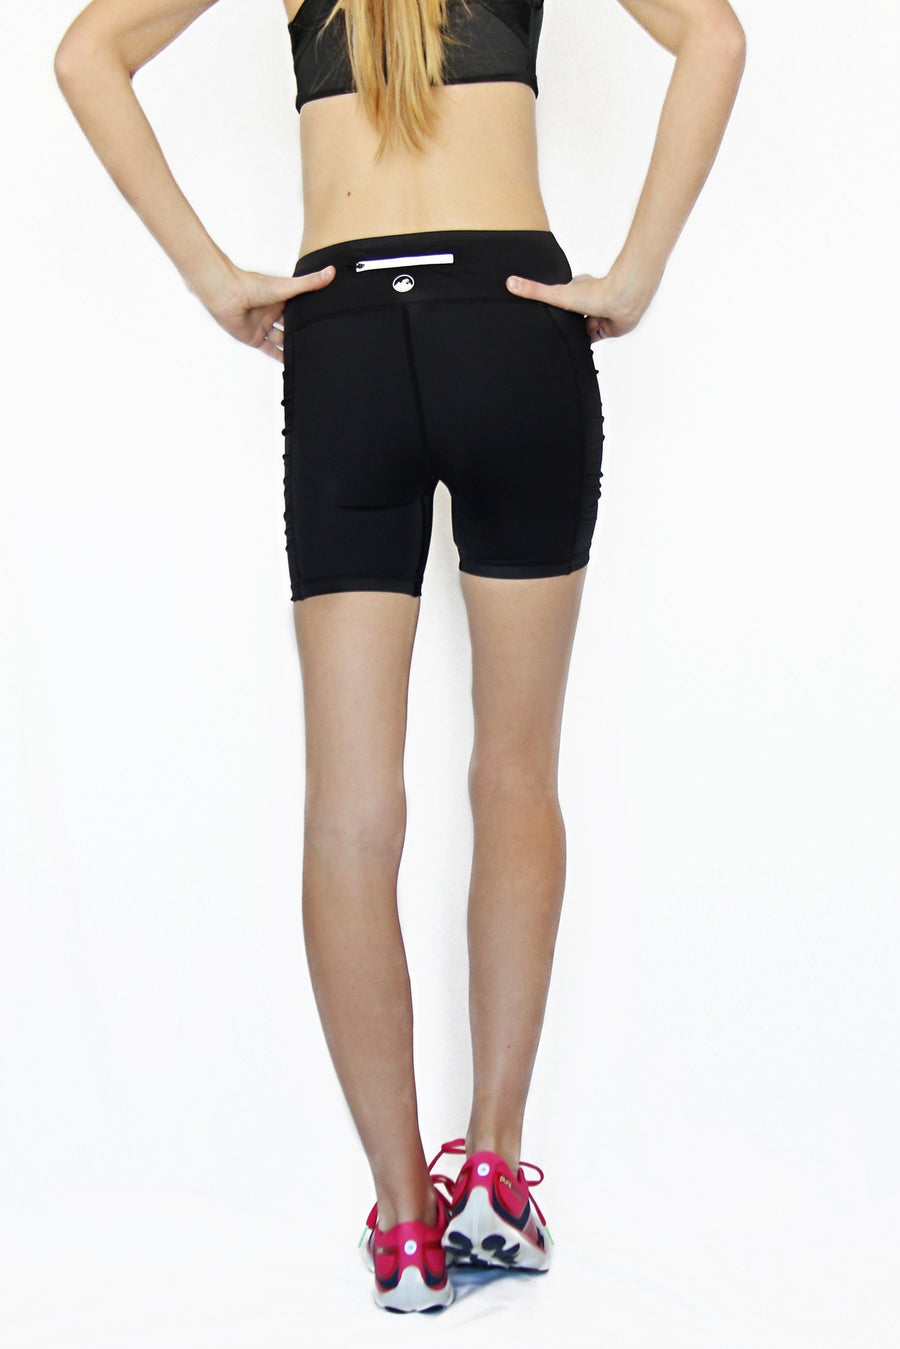 Pocket Short - Black 5 inch